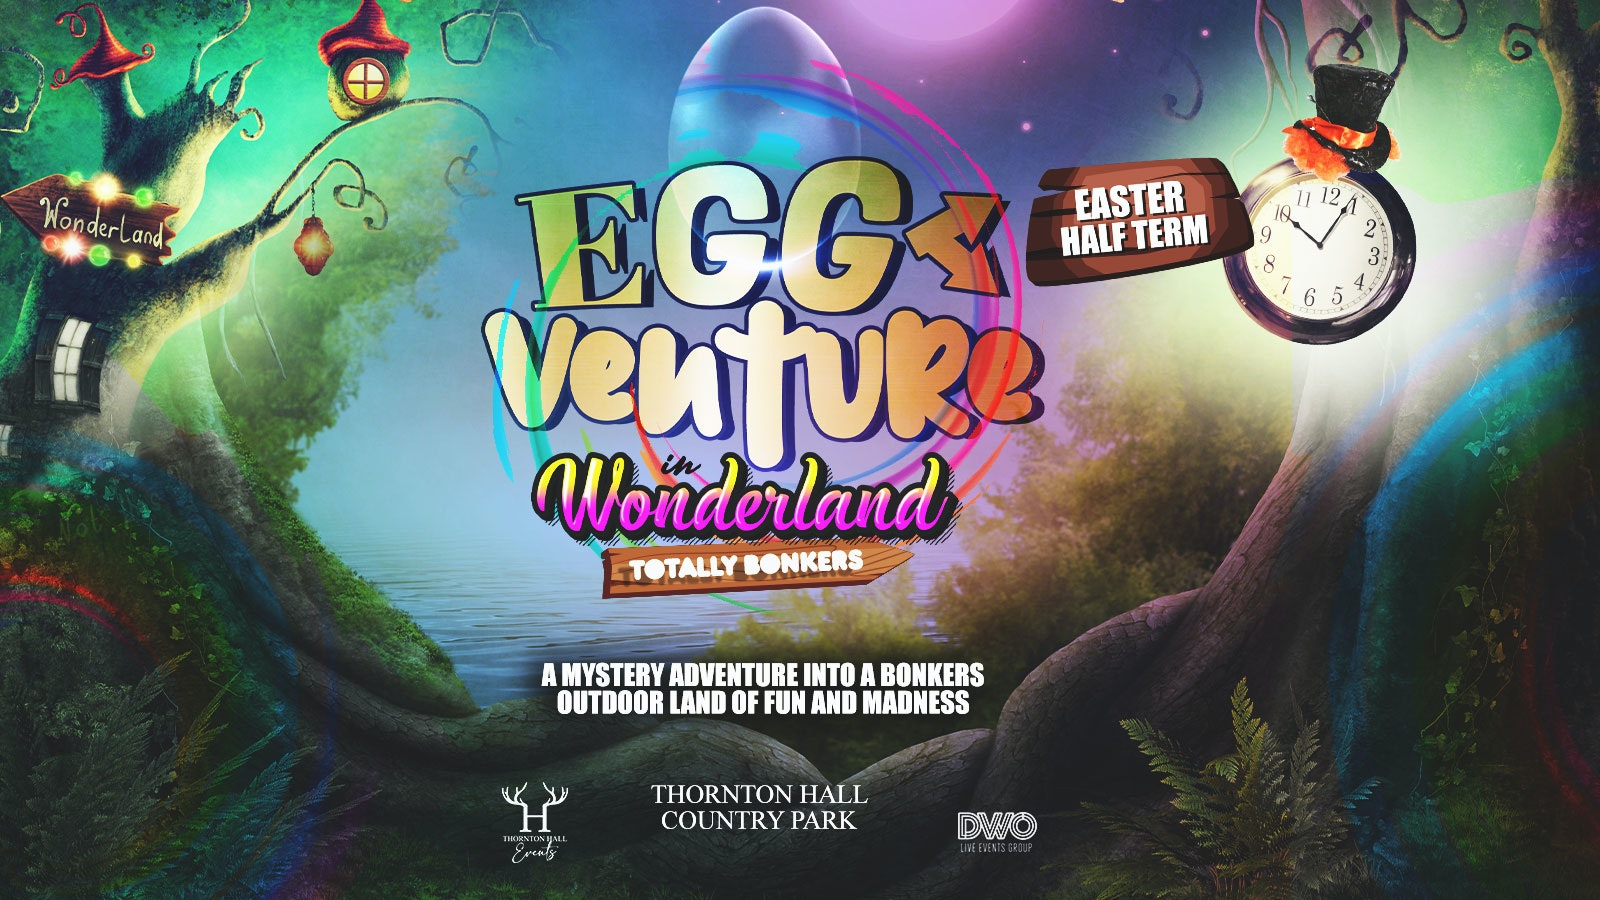 EggVenture in Wonderland –  Friday 9th April – 12.30pm